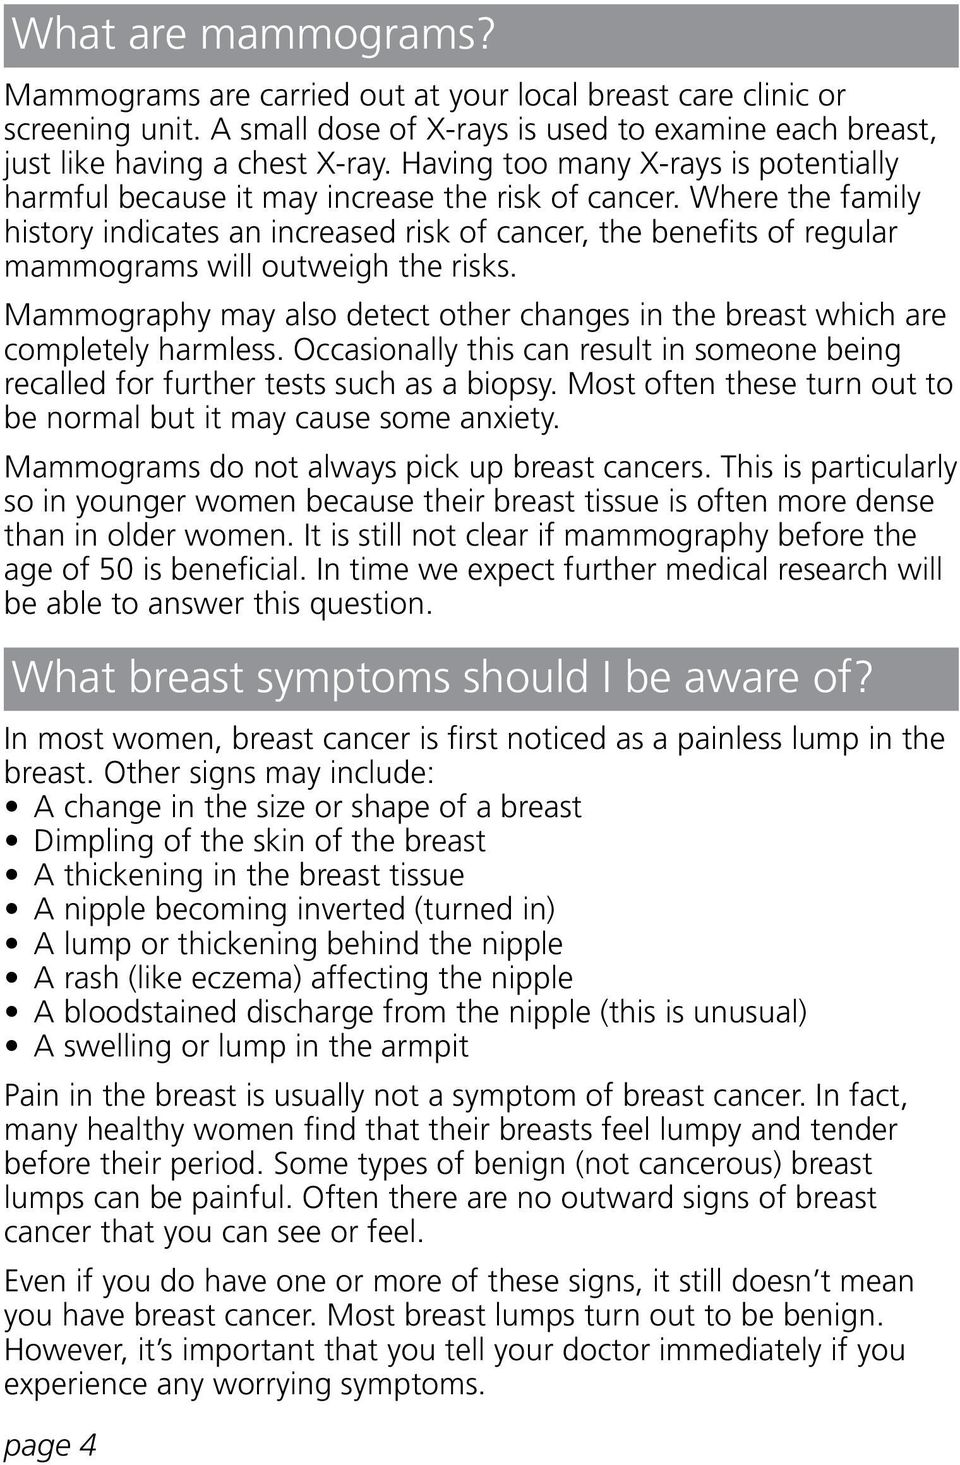 Where the family history indicates an increased risk of cancer, the benefits of regular mammograms will outweigh the risks.